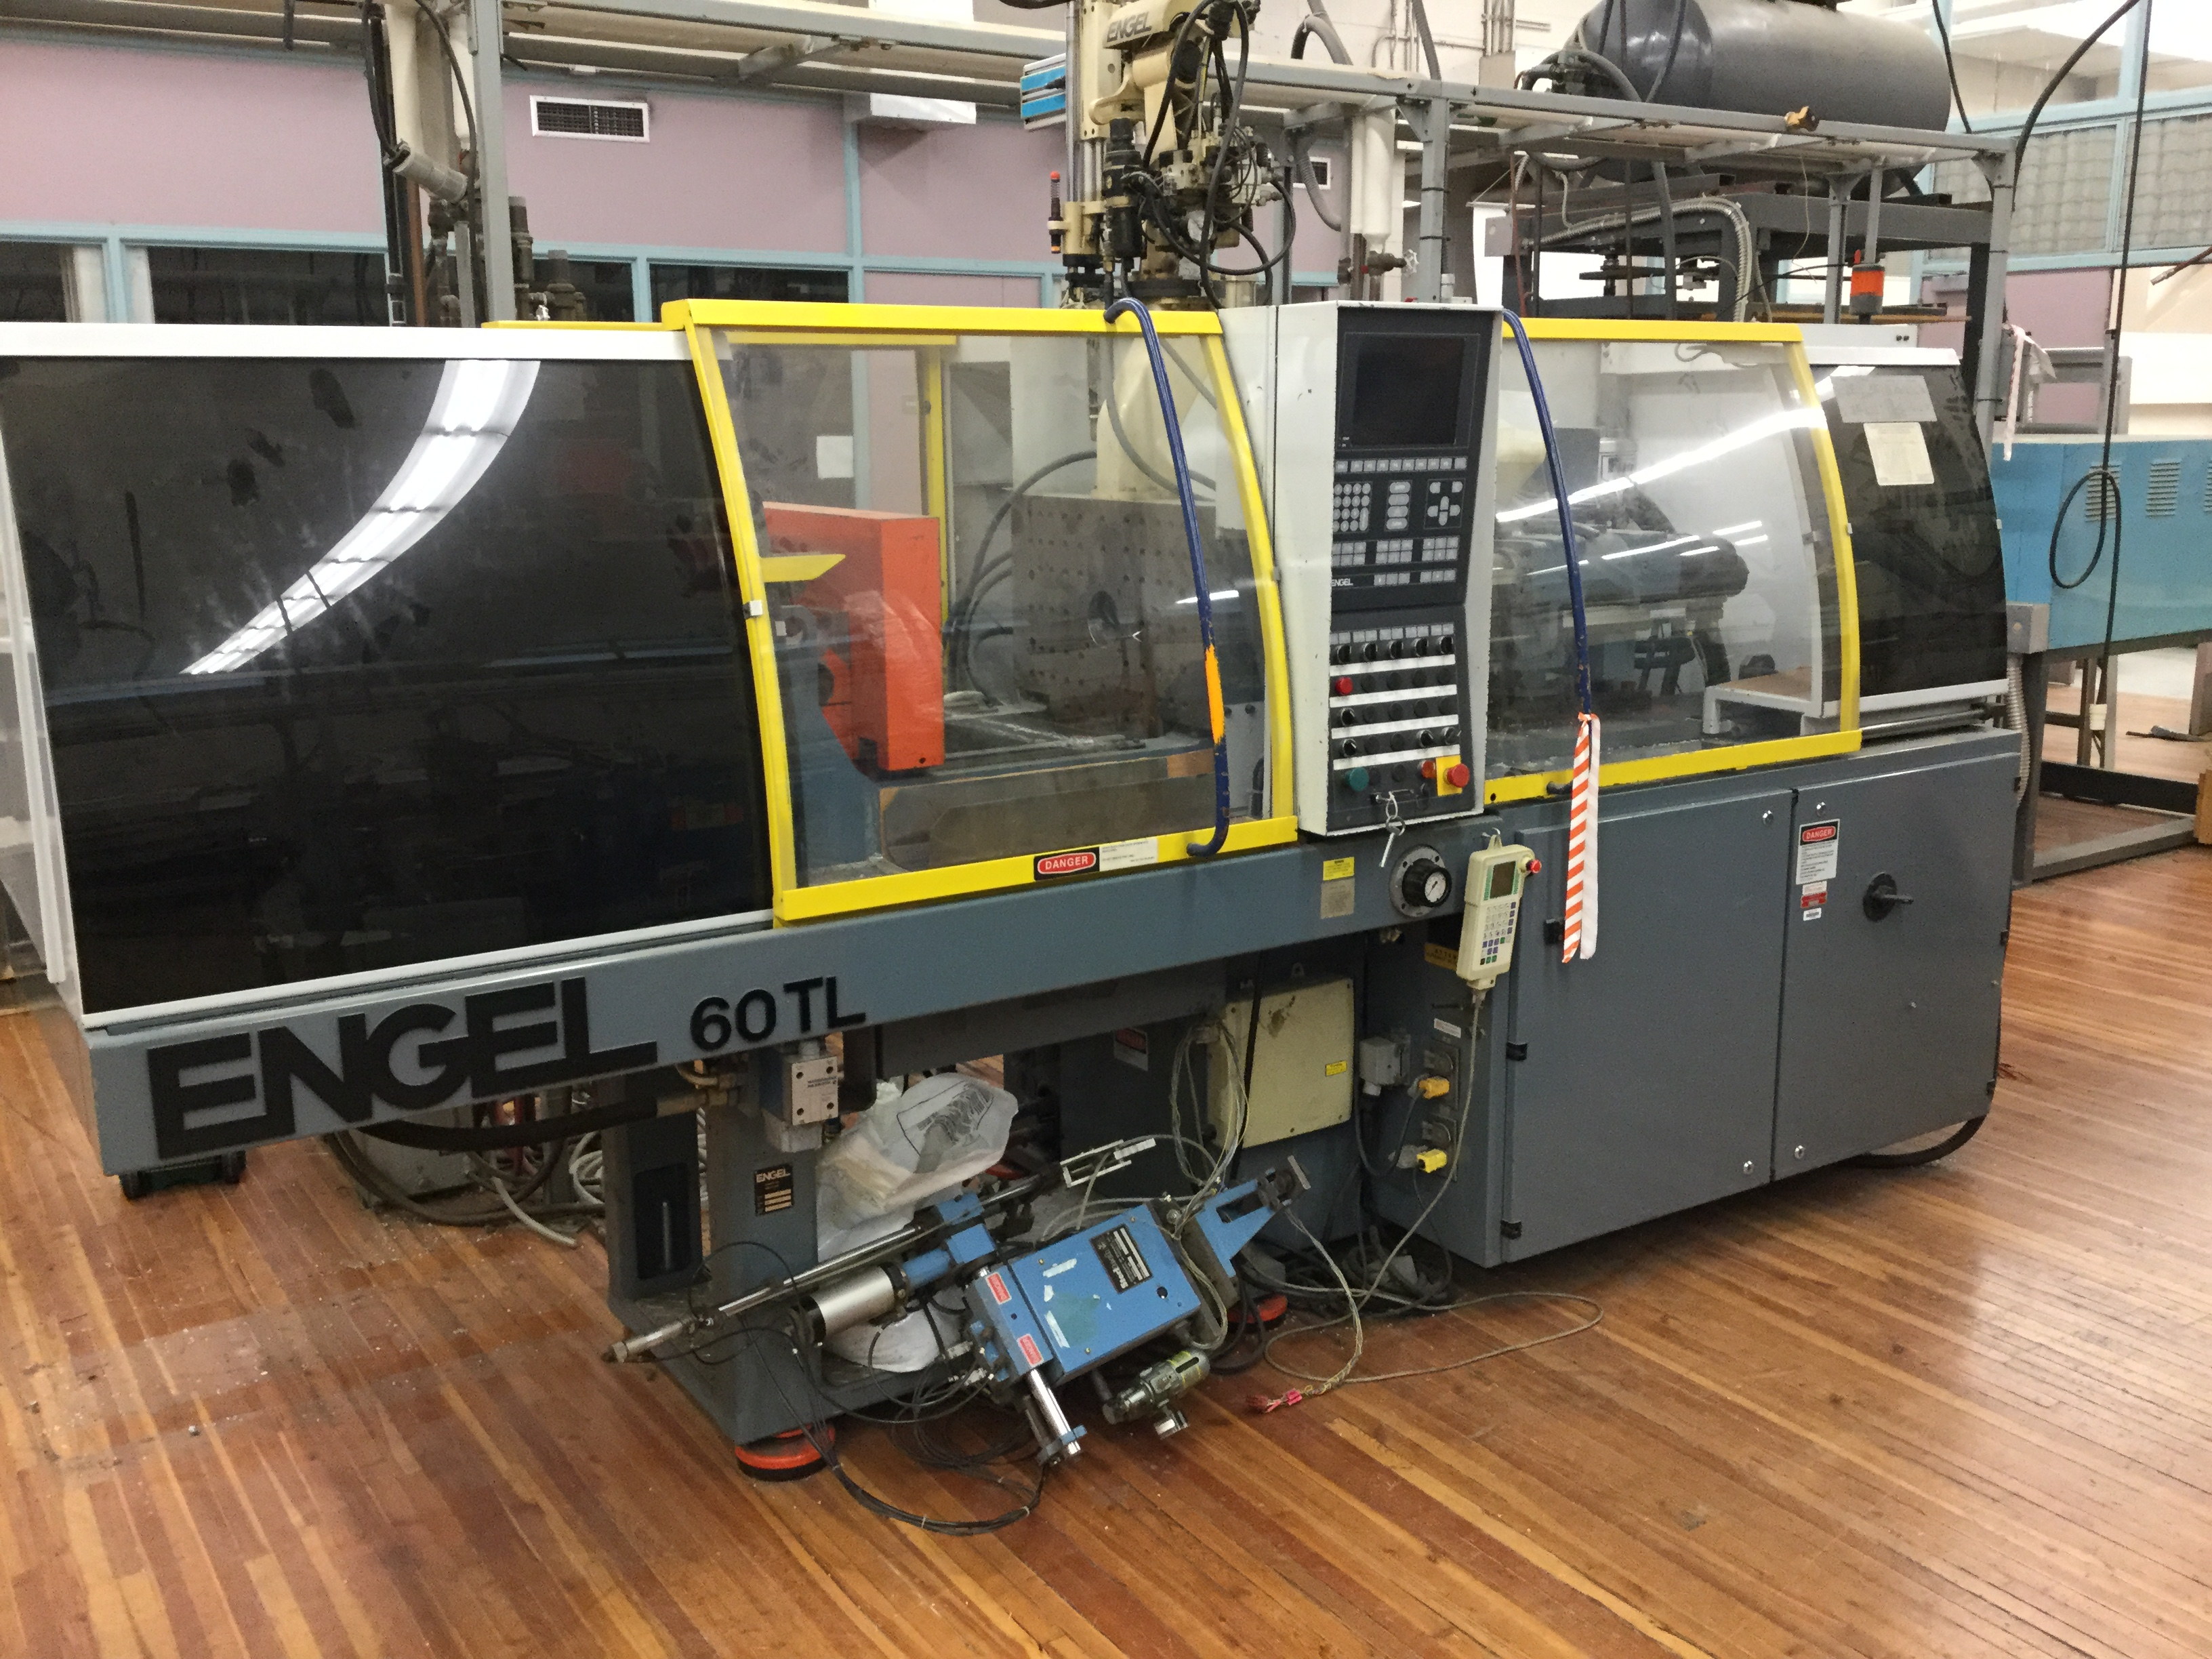 Engel Model ES 200/60 TL (60) Ton Injection Molding Machine